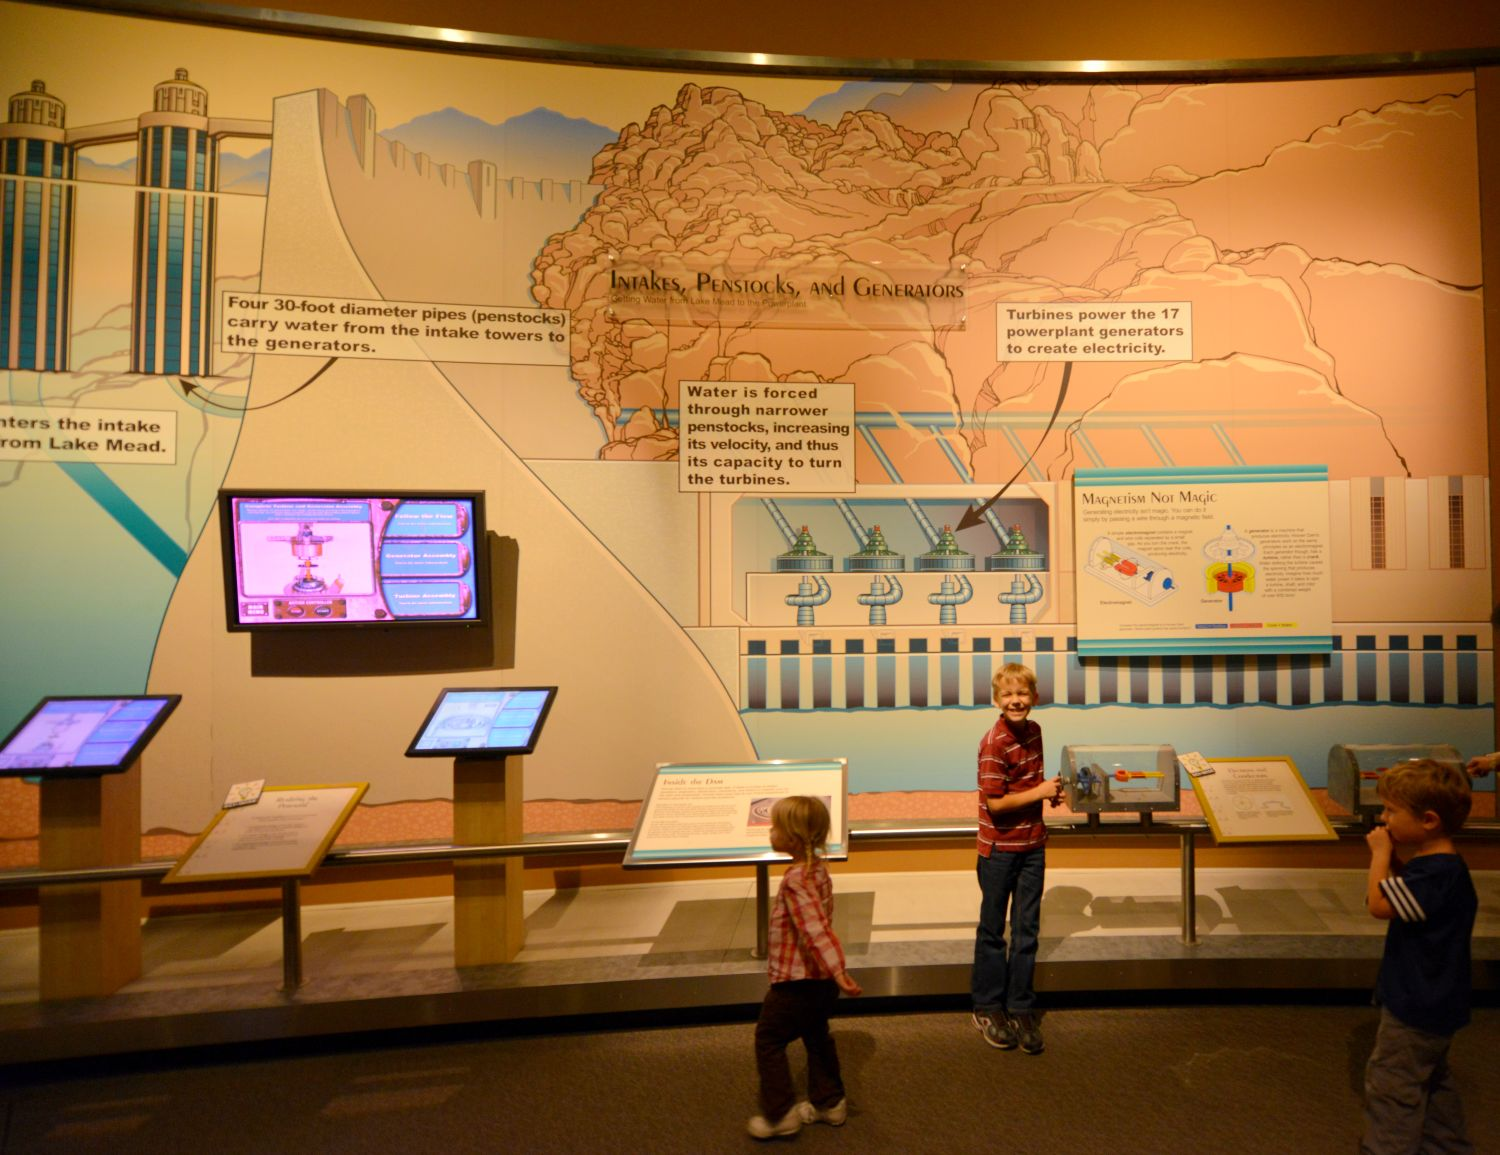 A School Of Fish Hoover Dam Power Plant Diagram Seb Loved This Huge Wall The Path Water Through Powerhouse And Probably Because He Has Drawn Many Similar In His Day